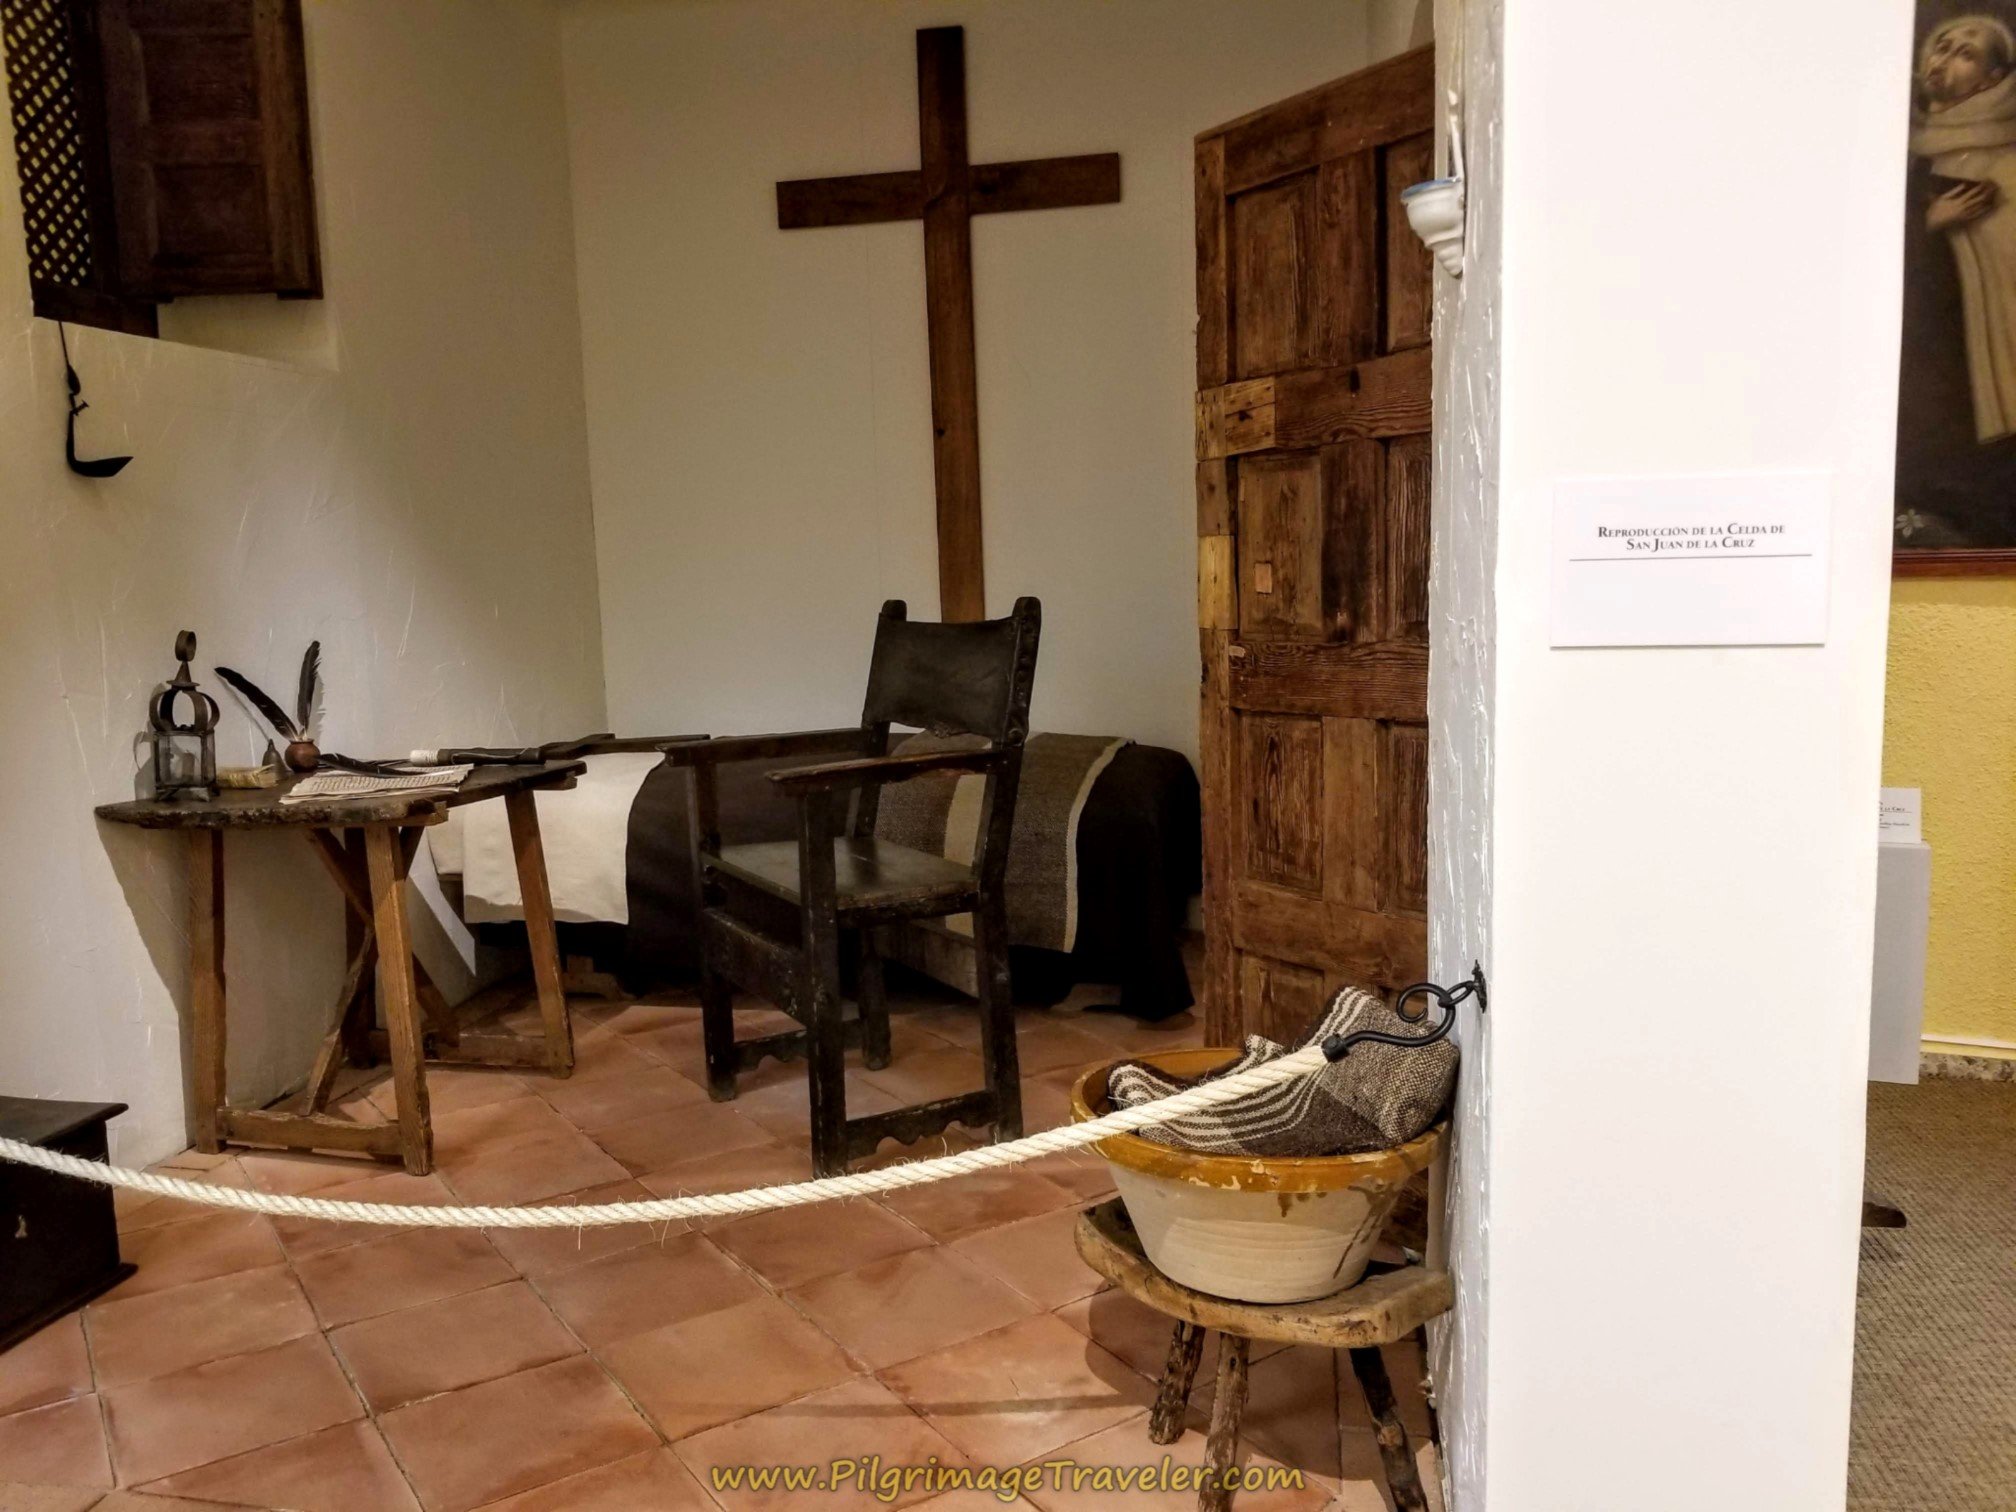 Reproduction of Cell of St. John of the Cross, Centro Teresiano Sanjuanista, Alba de Tormes